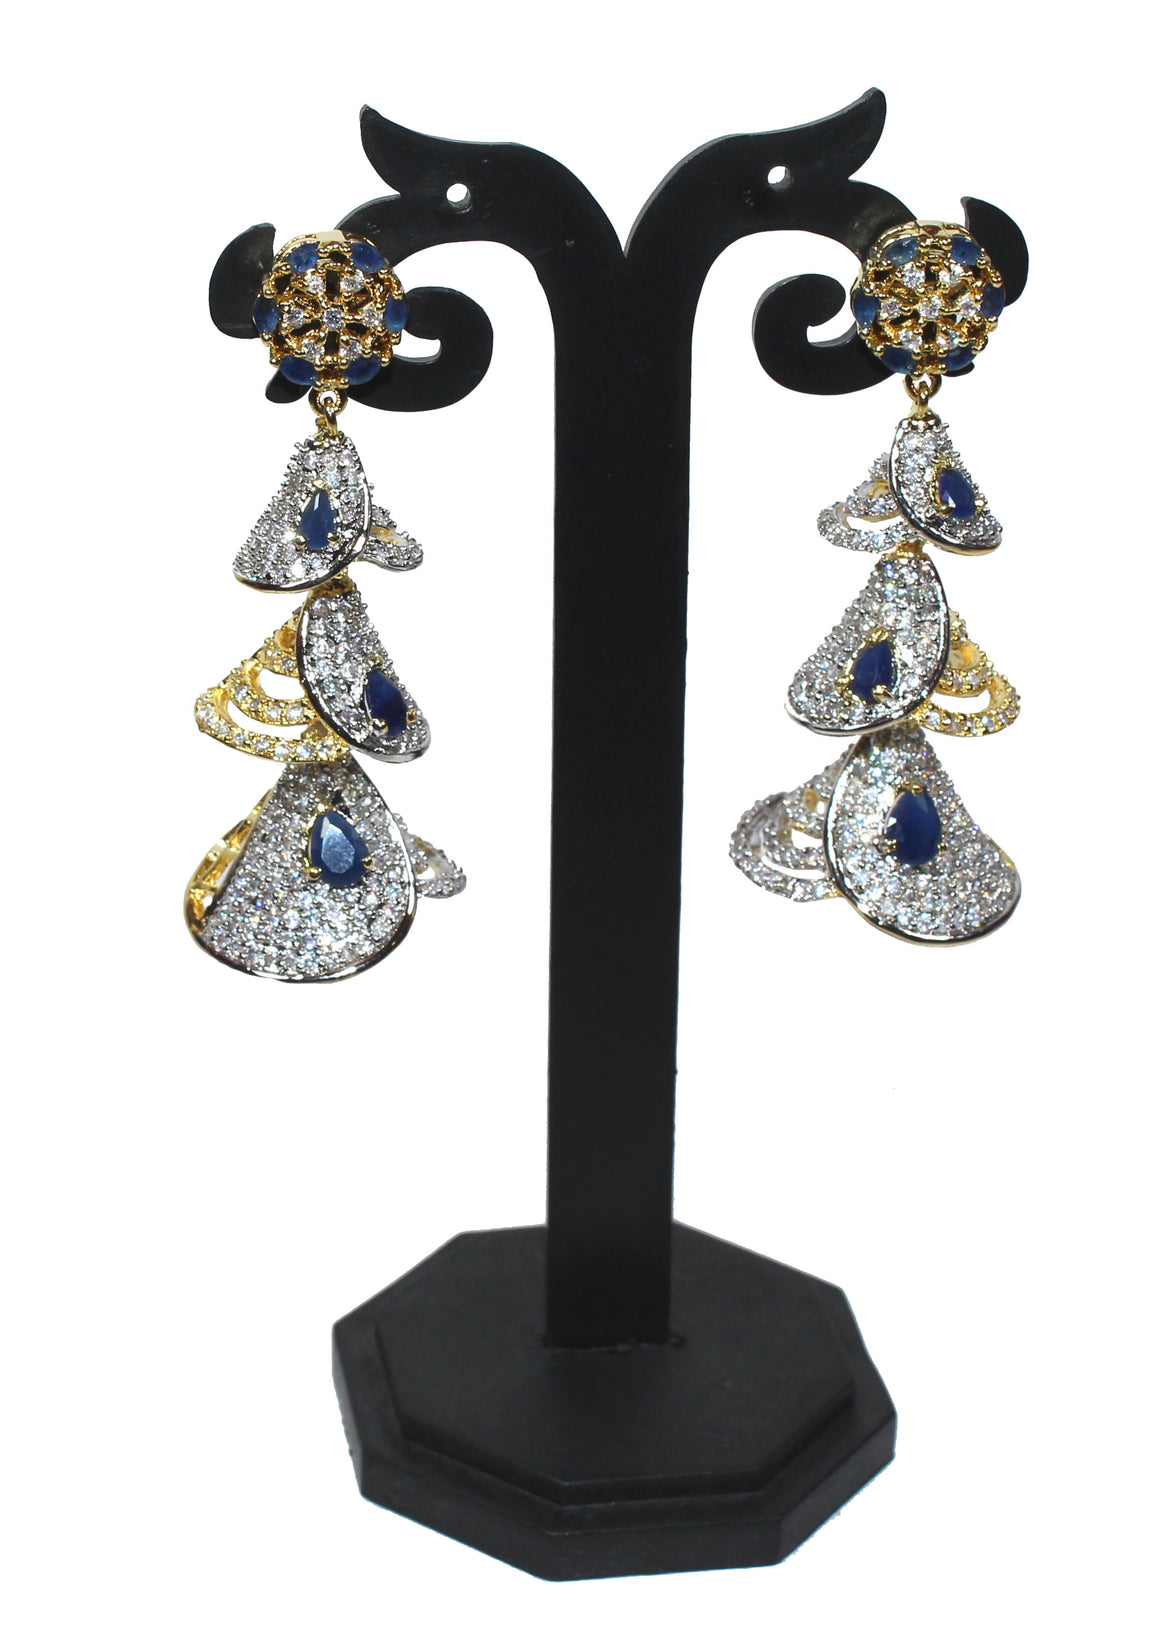 Alekip High Quality Cz Earrings with Navy Blue Semi precious Stones studded